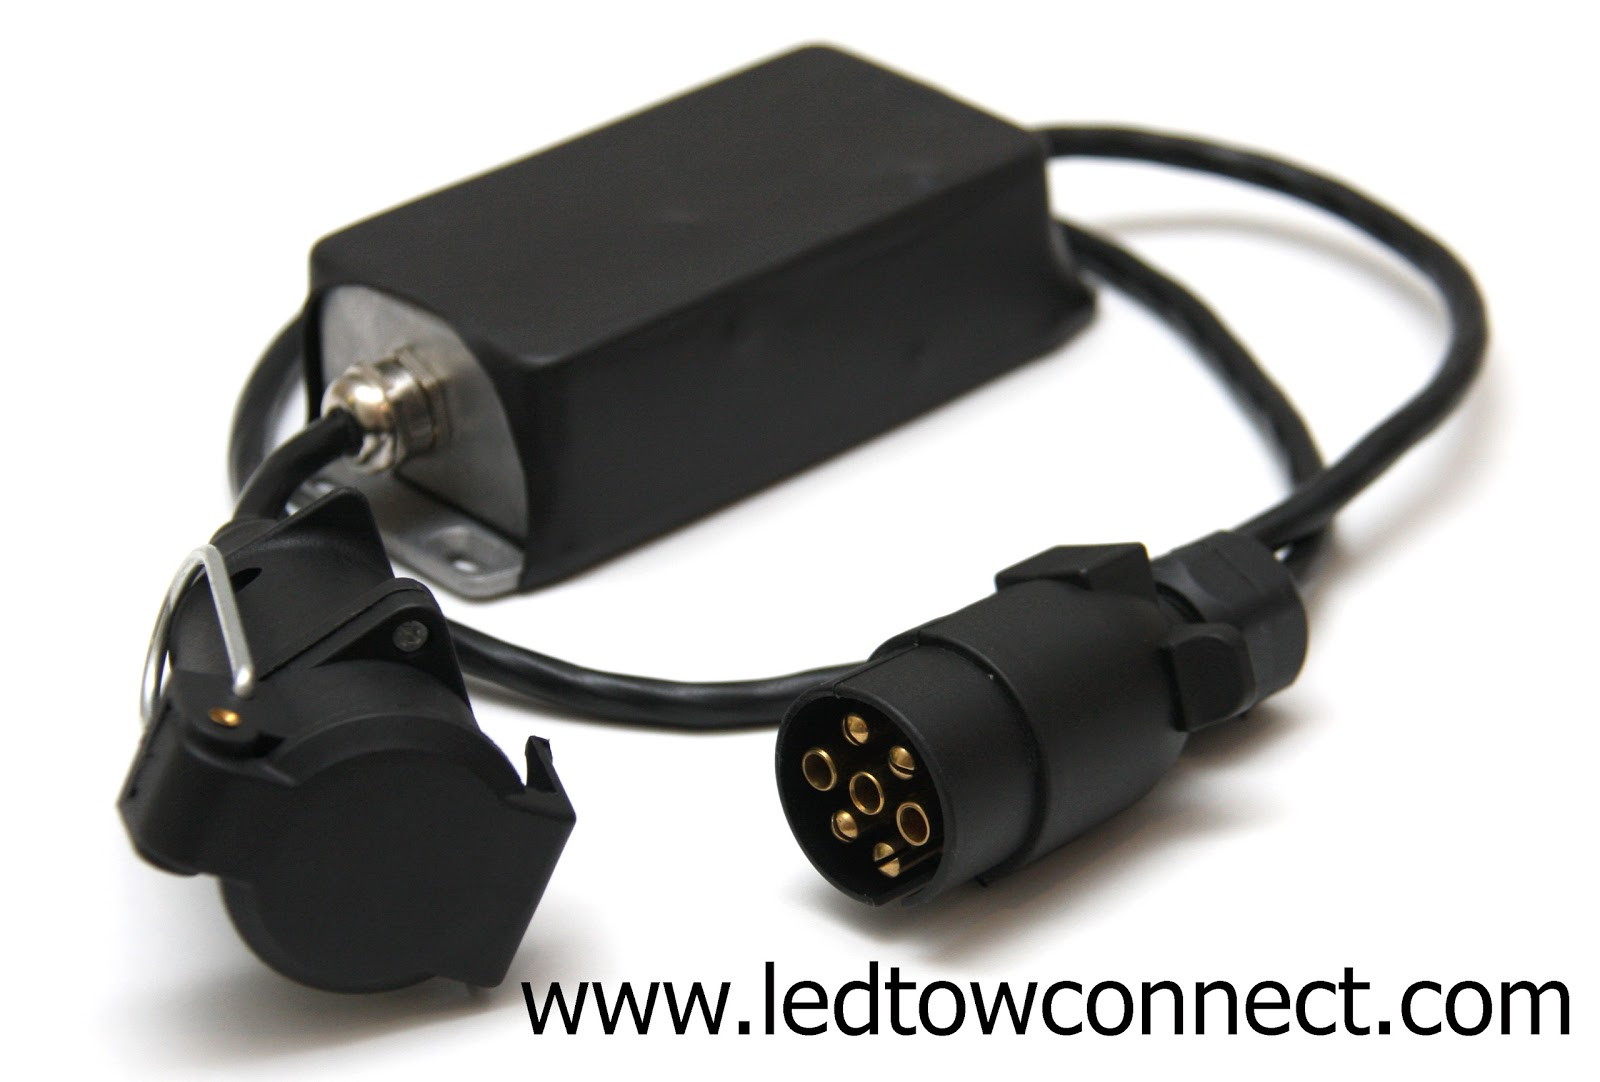 LED Tow Connect - towing LED pulse shunt